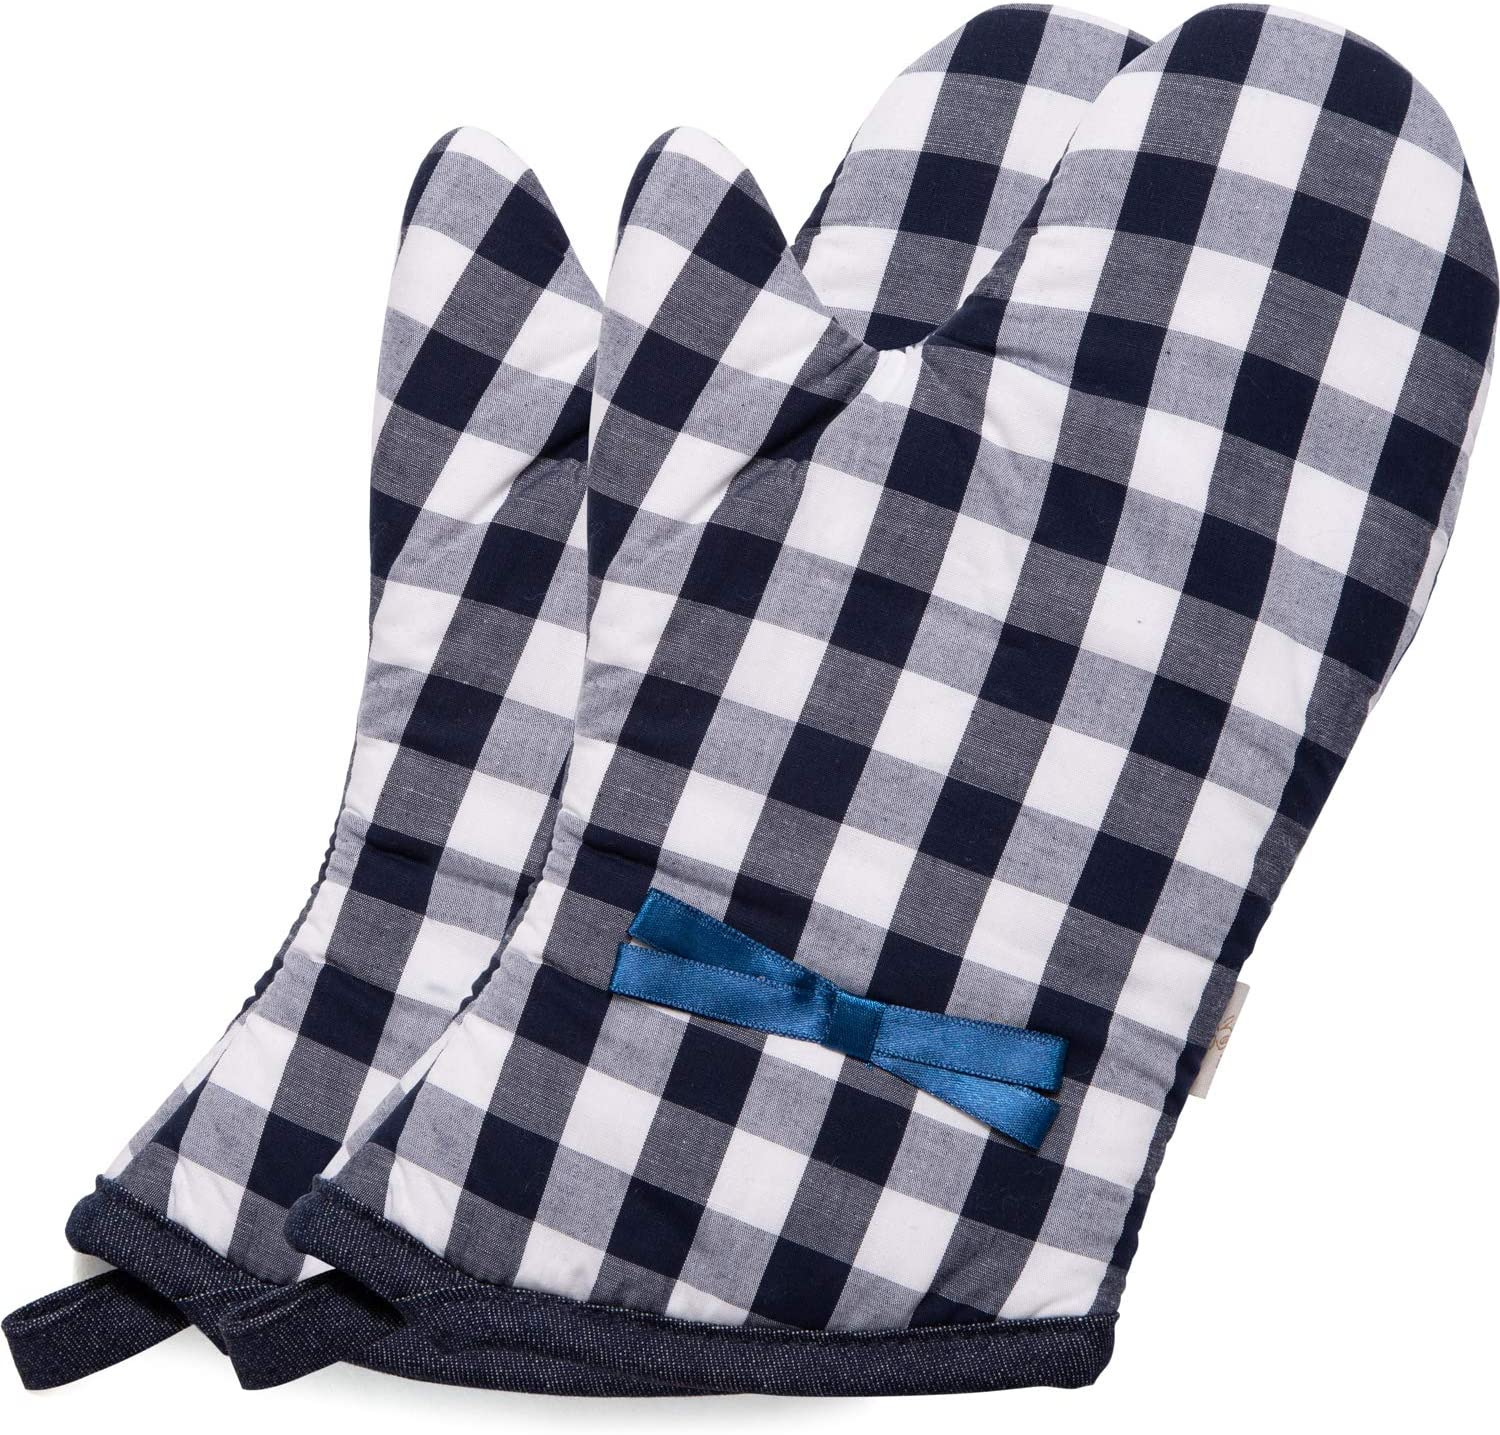 NEOVIVA Quilted Cotton Heat Resistant Adult Oven Mitts, Set of 2, Checked Navy